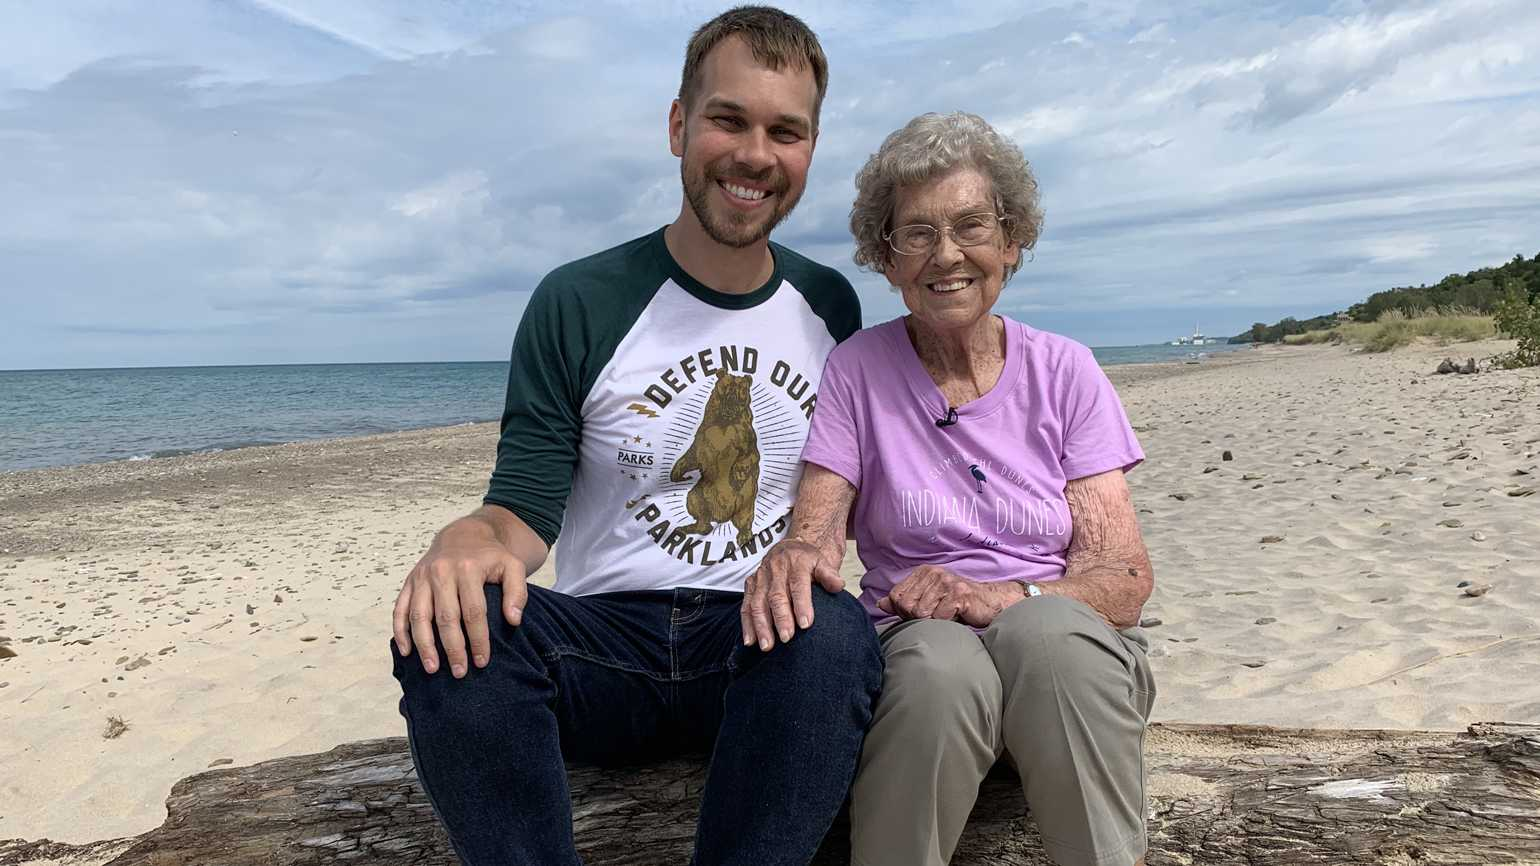 Brad Ryan and his grandmother, Joy Ryan